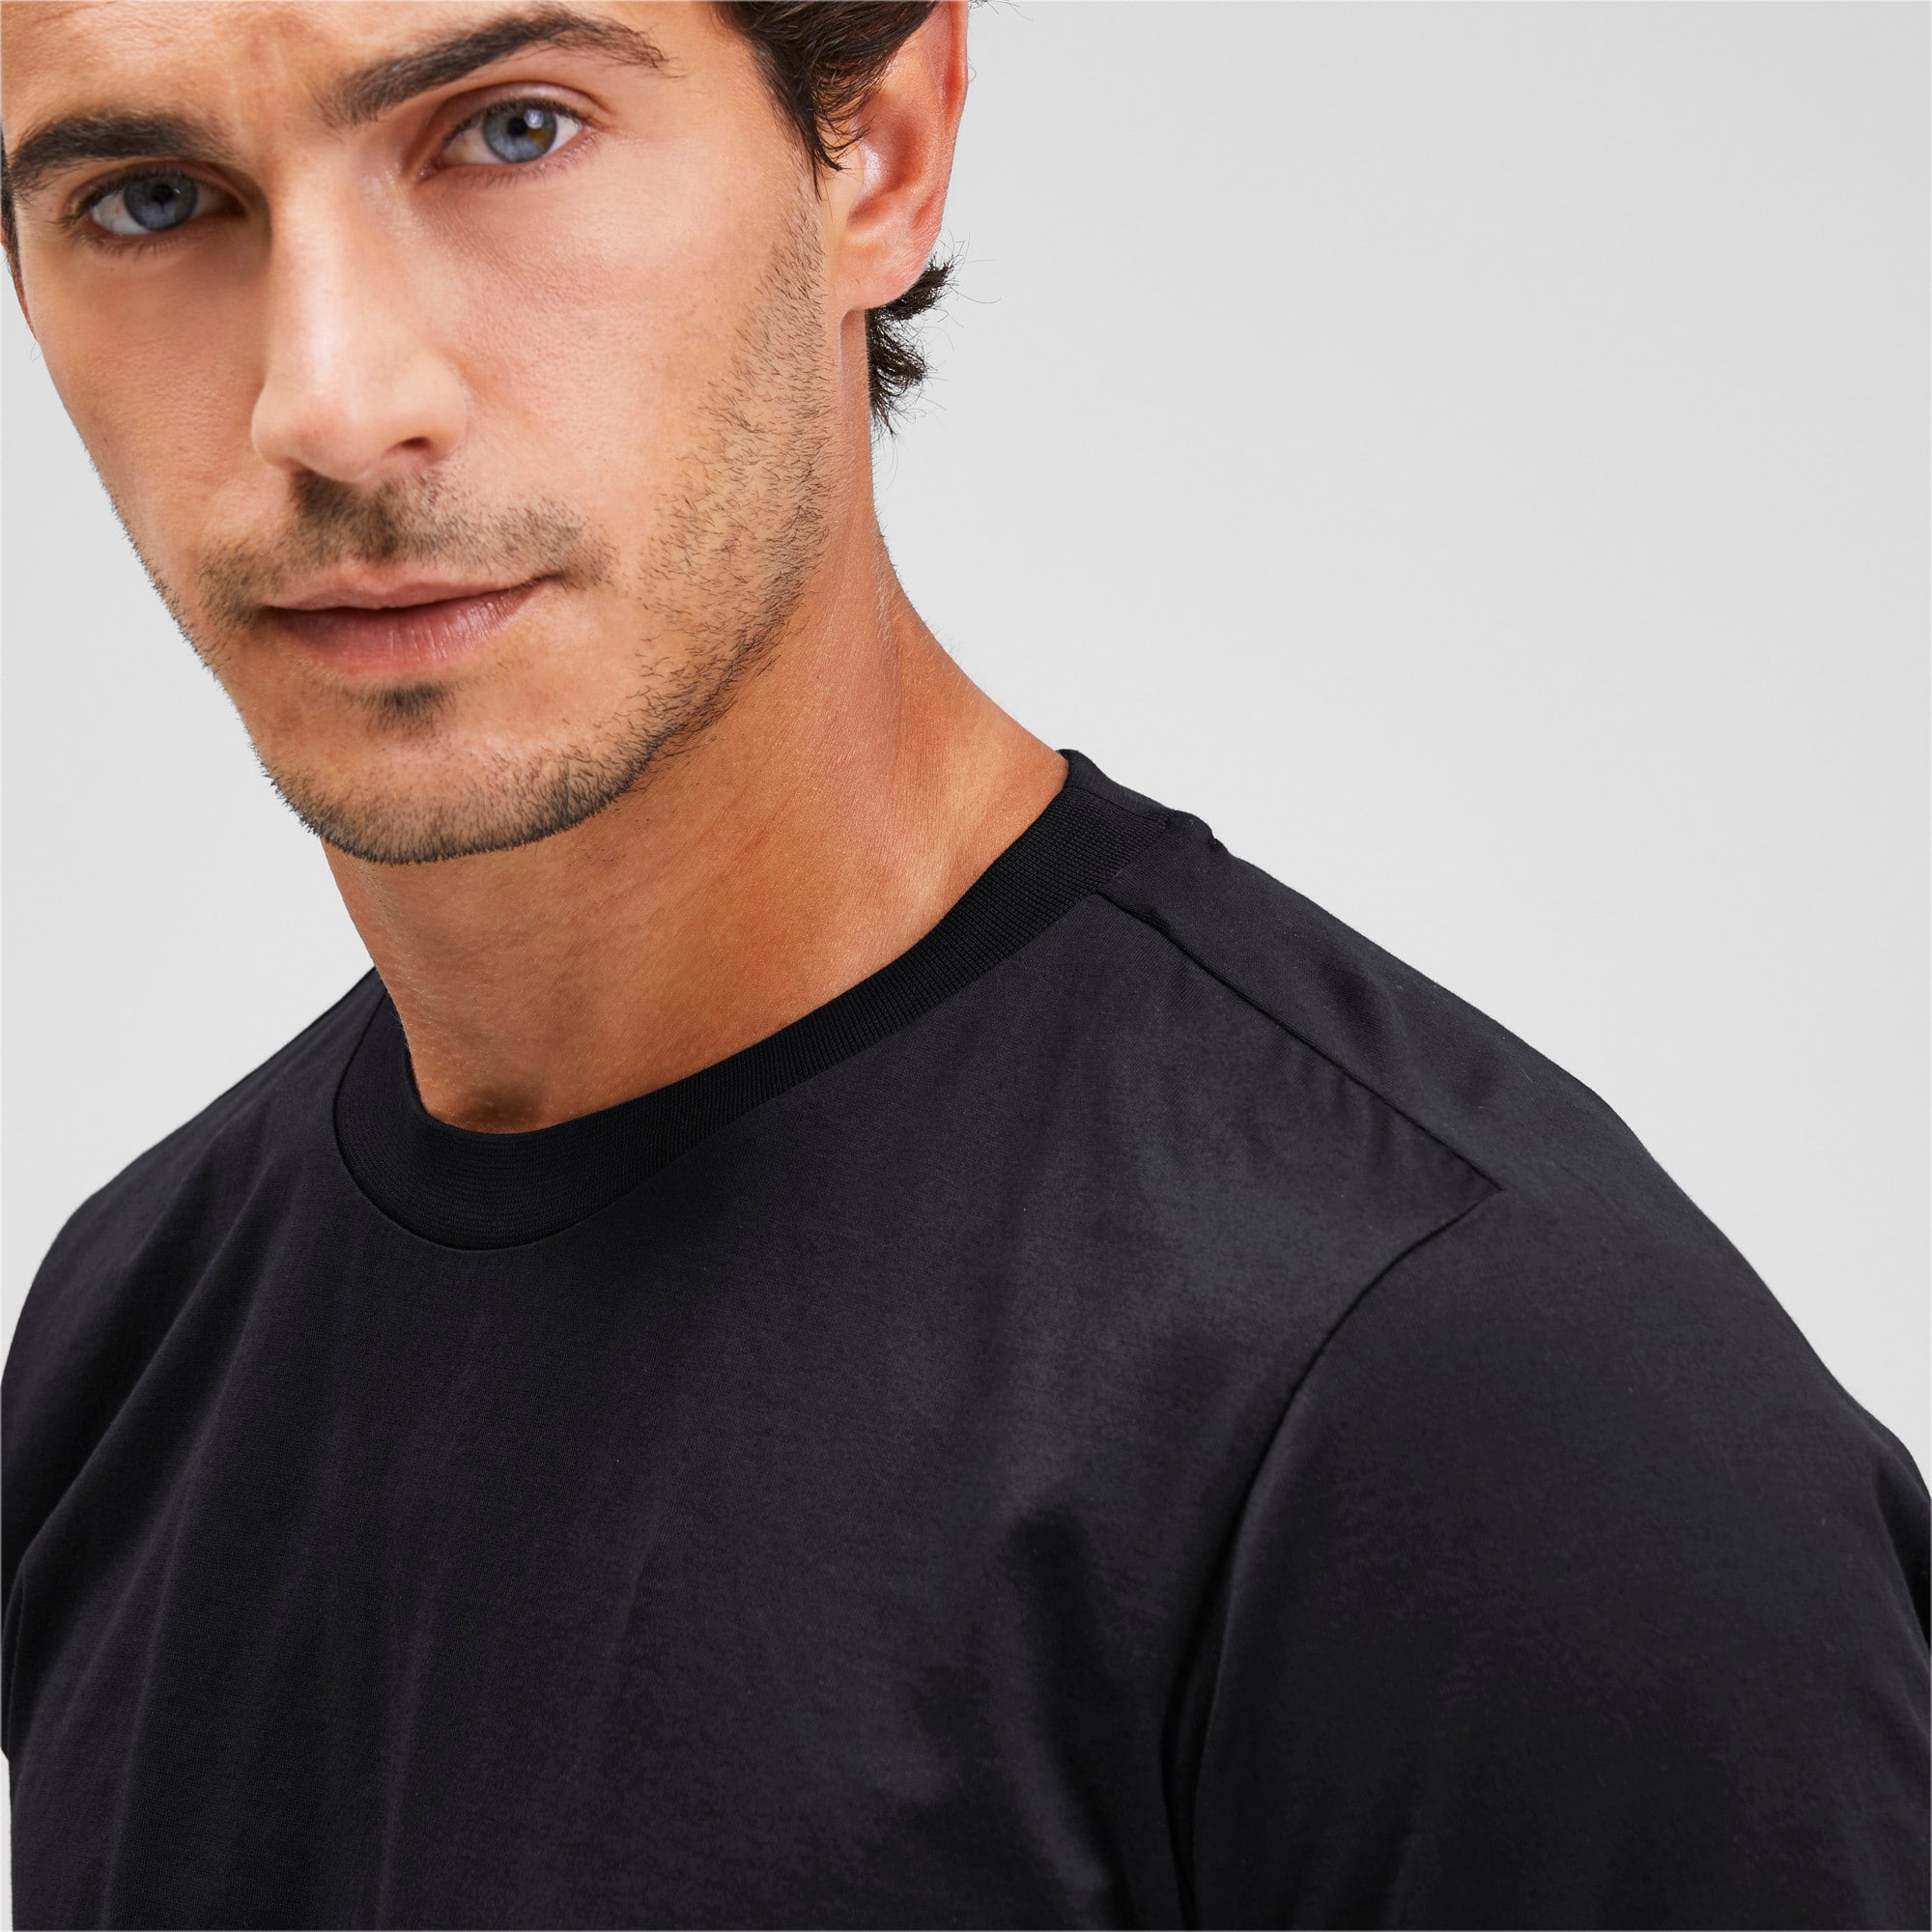 Thumbnail 6 of Porsche Design Men's Essential Tee, Jet Black, medium